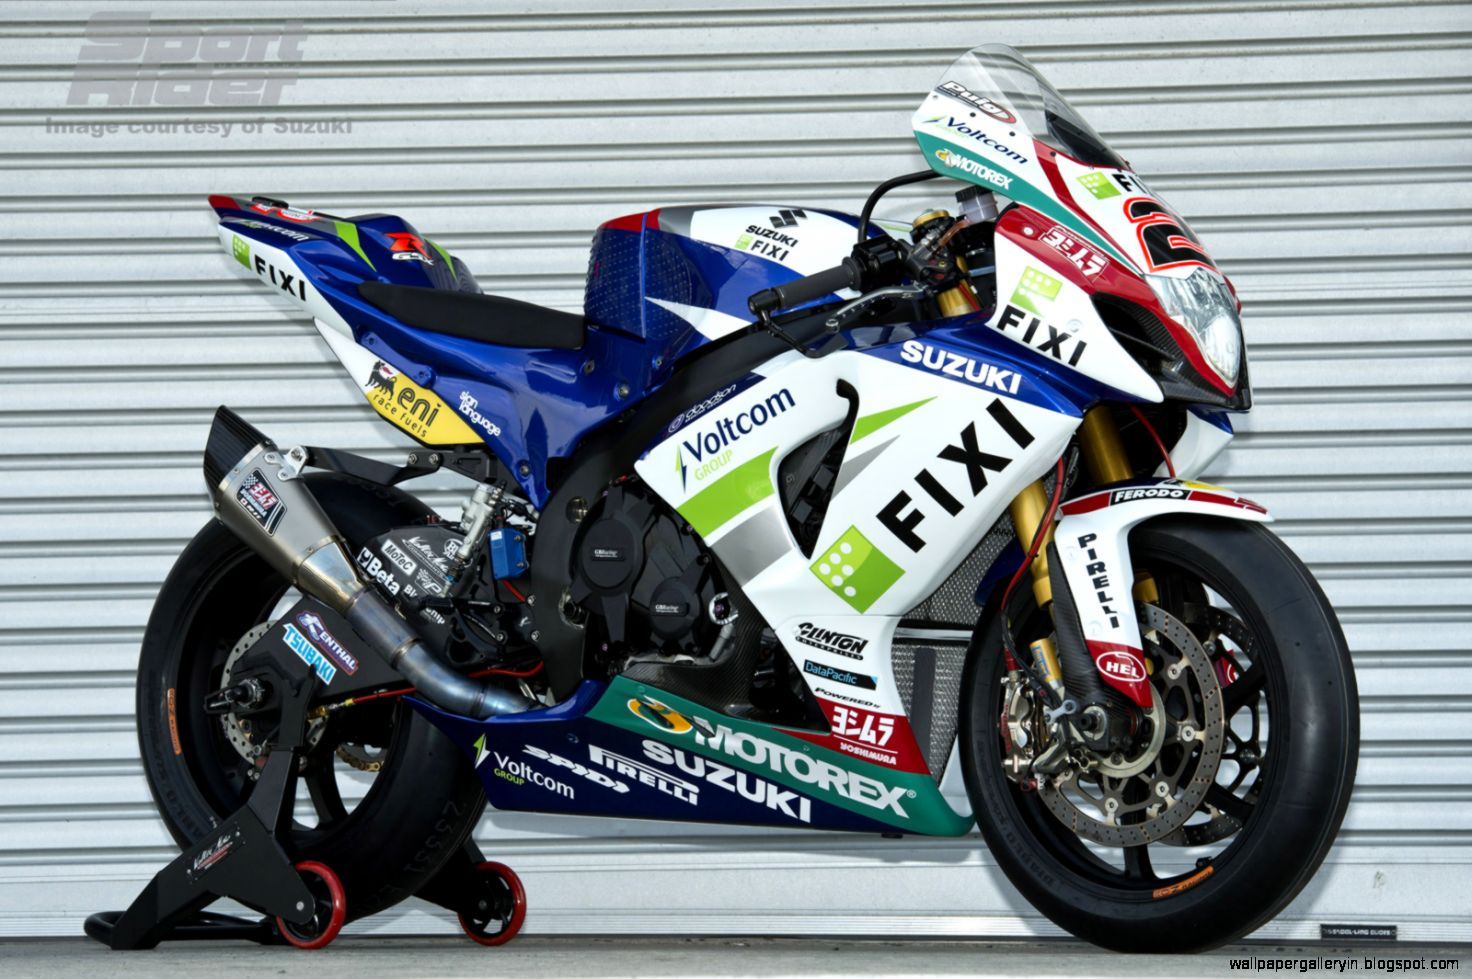 Suzuki World Superbike Team HD 2416 Wallpaper